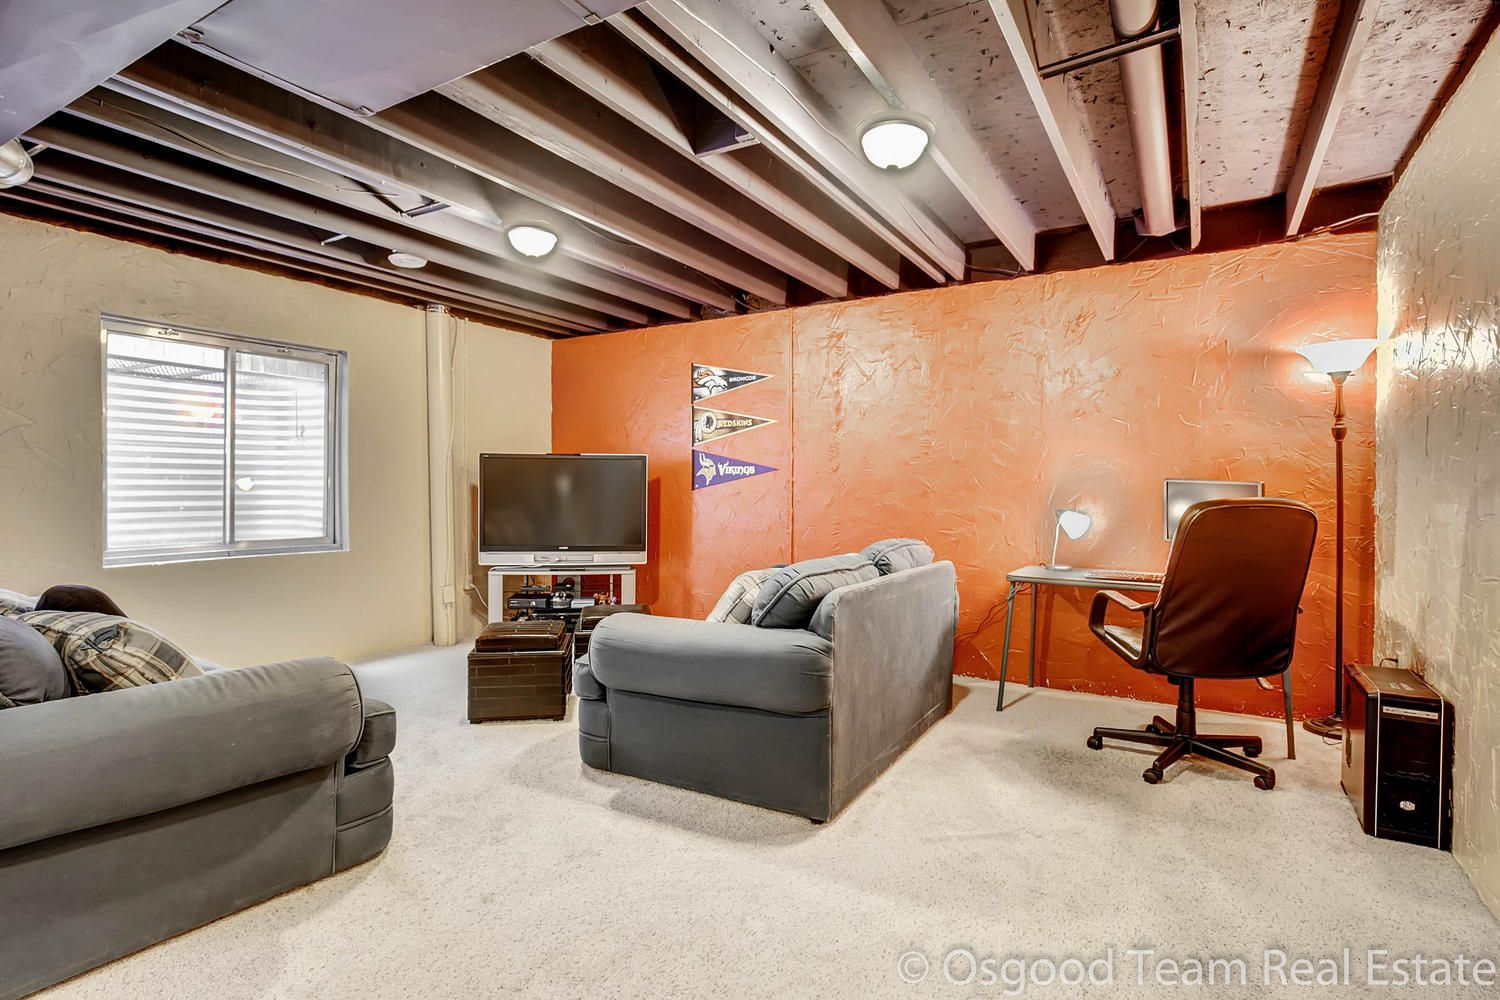 Fantastic Partially Finished Basement With Painted Ceiling Basement Remodel Diy Basement Ceiling Painted Ceiling